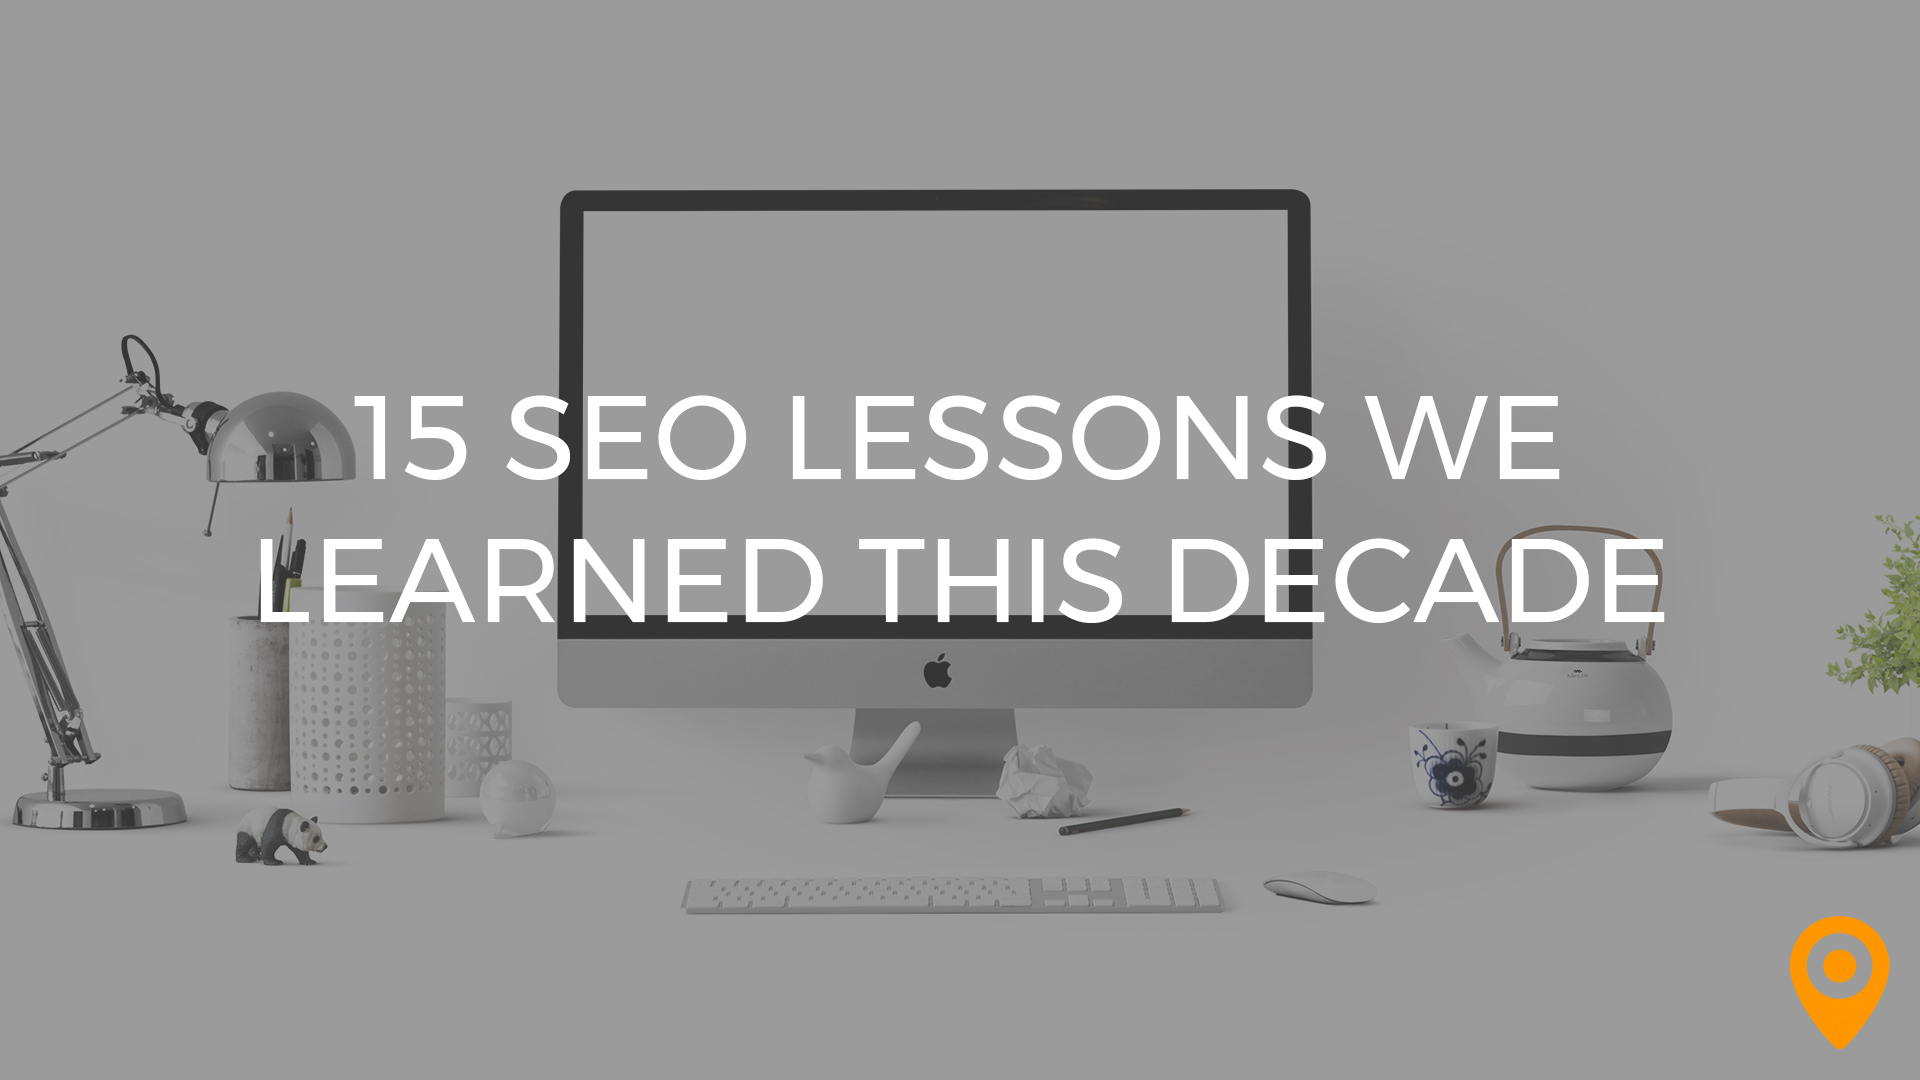 15 SEO Lessons We Learned This Decade